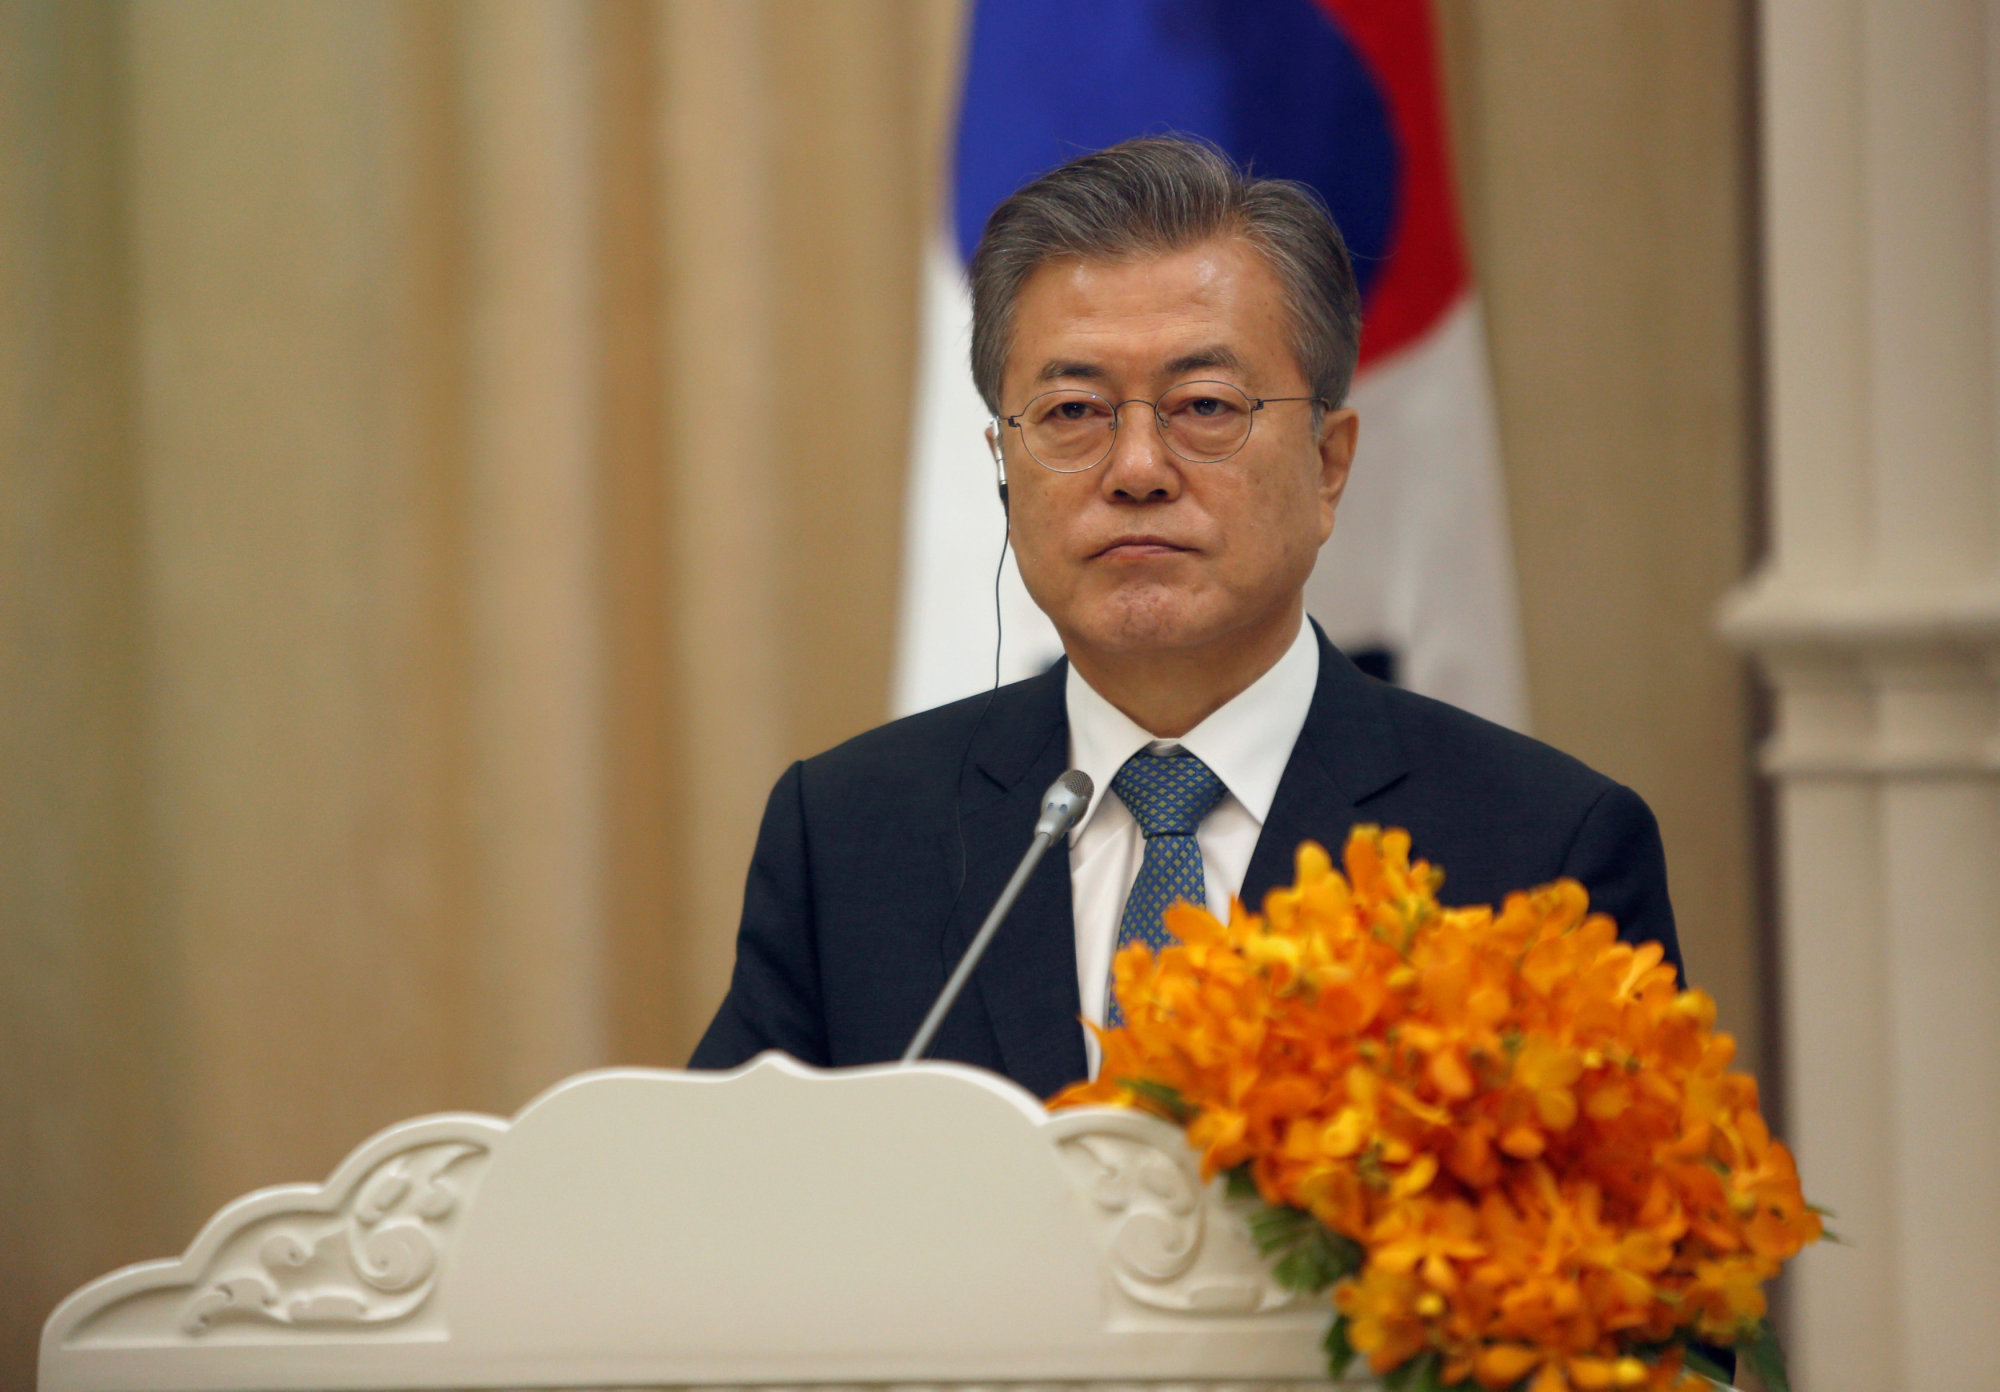 South Korean President Moon Jae-in attends a news conference after a signing ceremony at the Peace Palace in Phnom Penh on Friday. | REUTERS